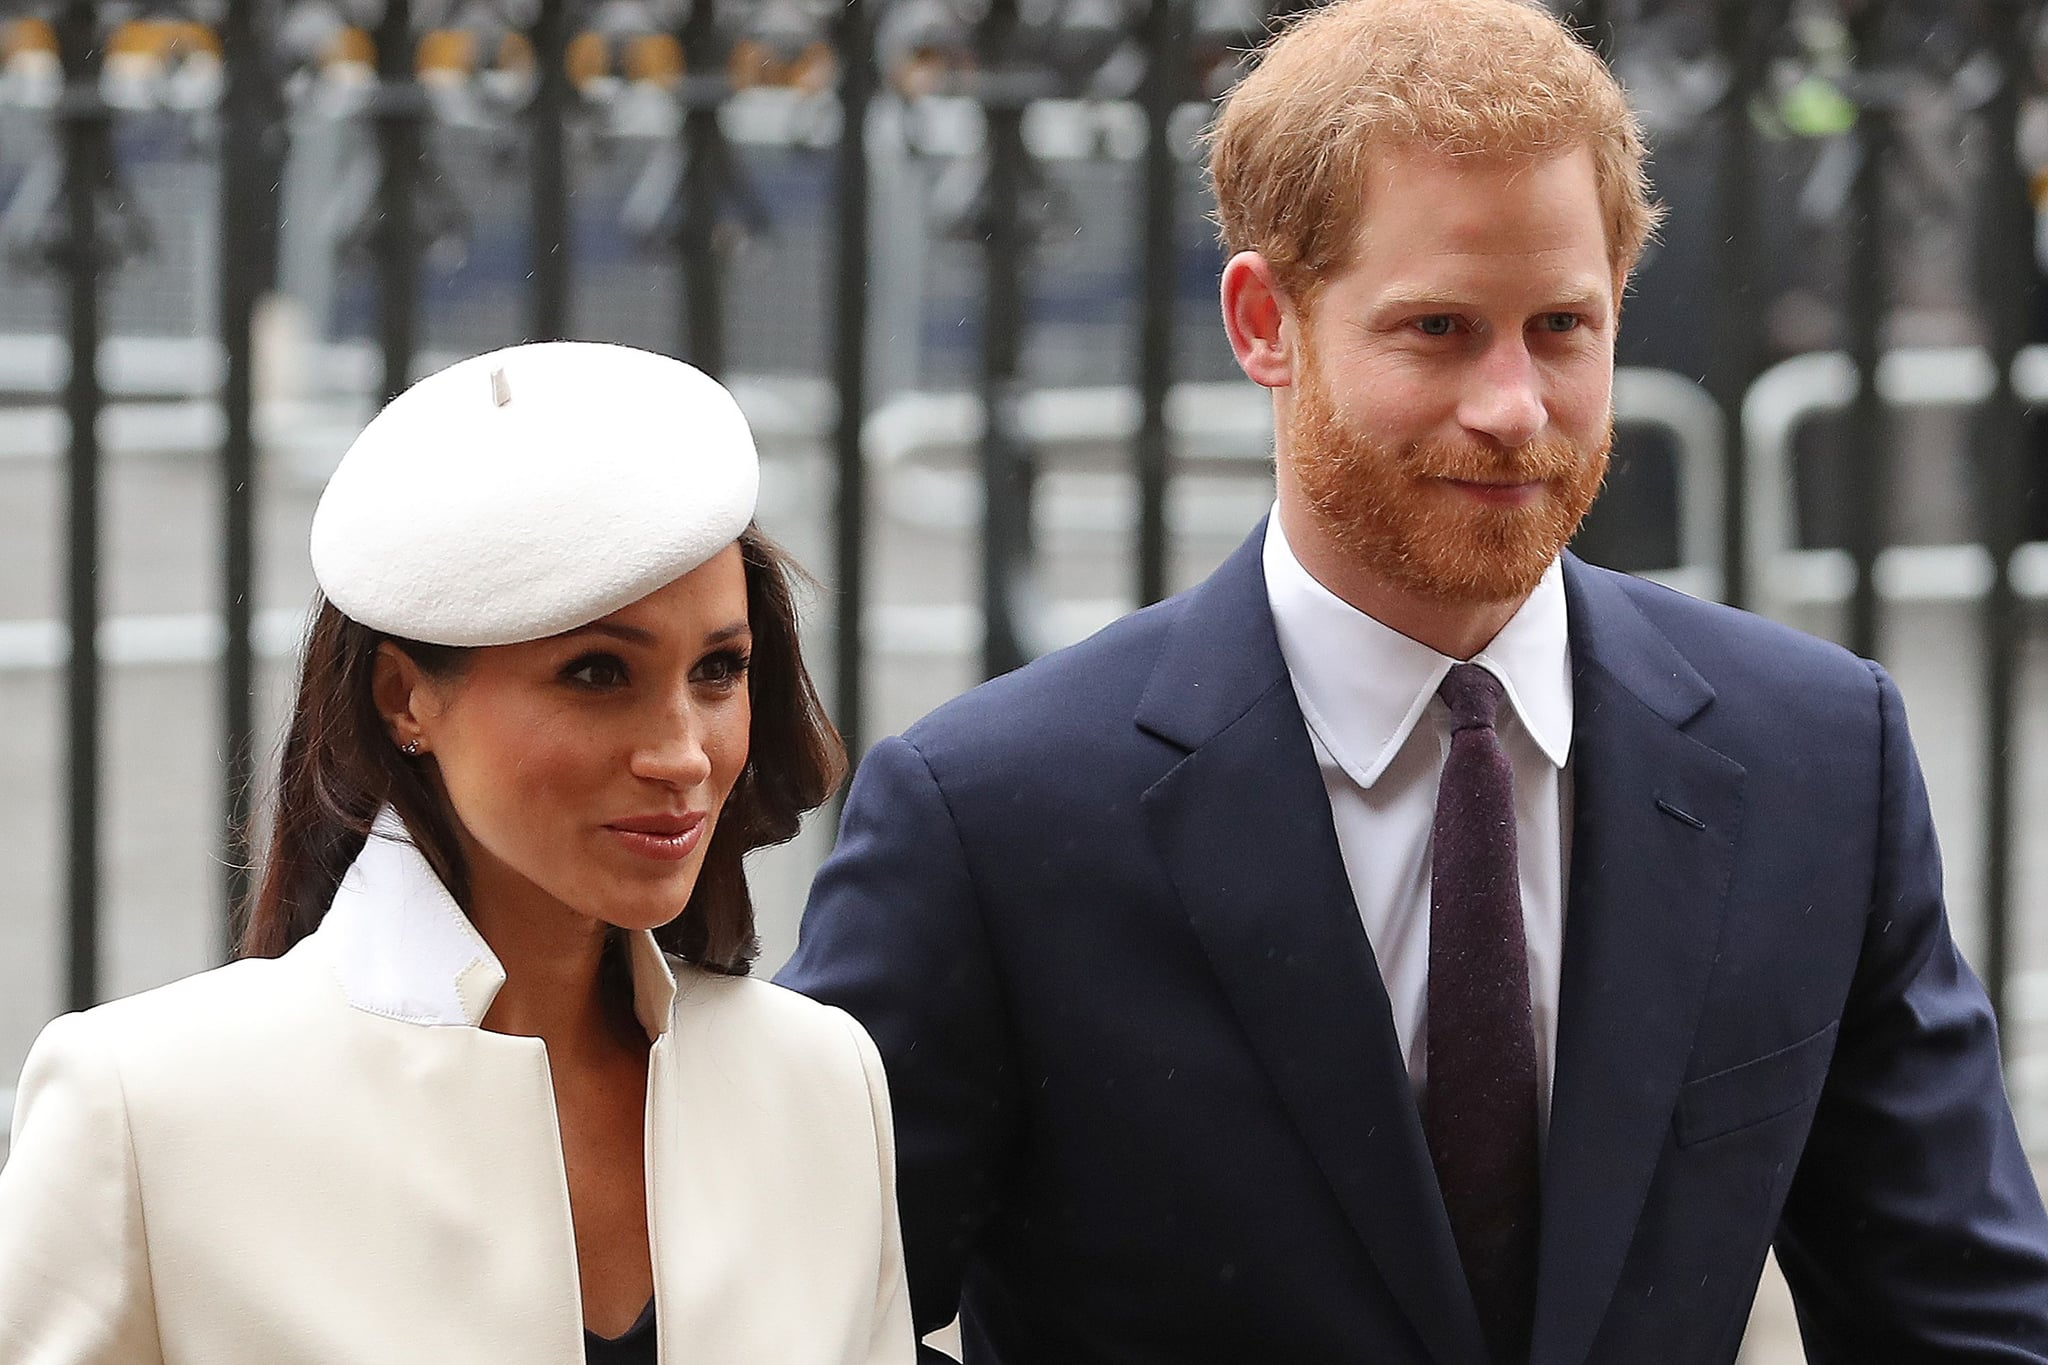 Britain's Prince Harry (R) and his fiancee US actress Meghan Markle attend a Commonwealth Day Service at Westminster Abbey in central London